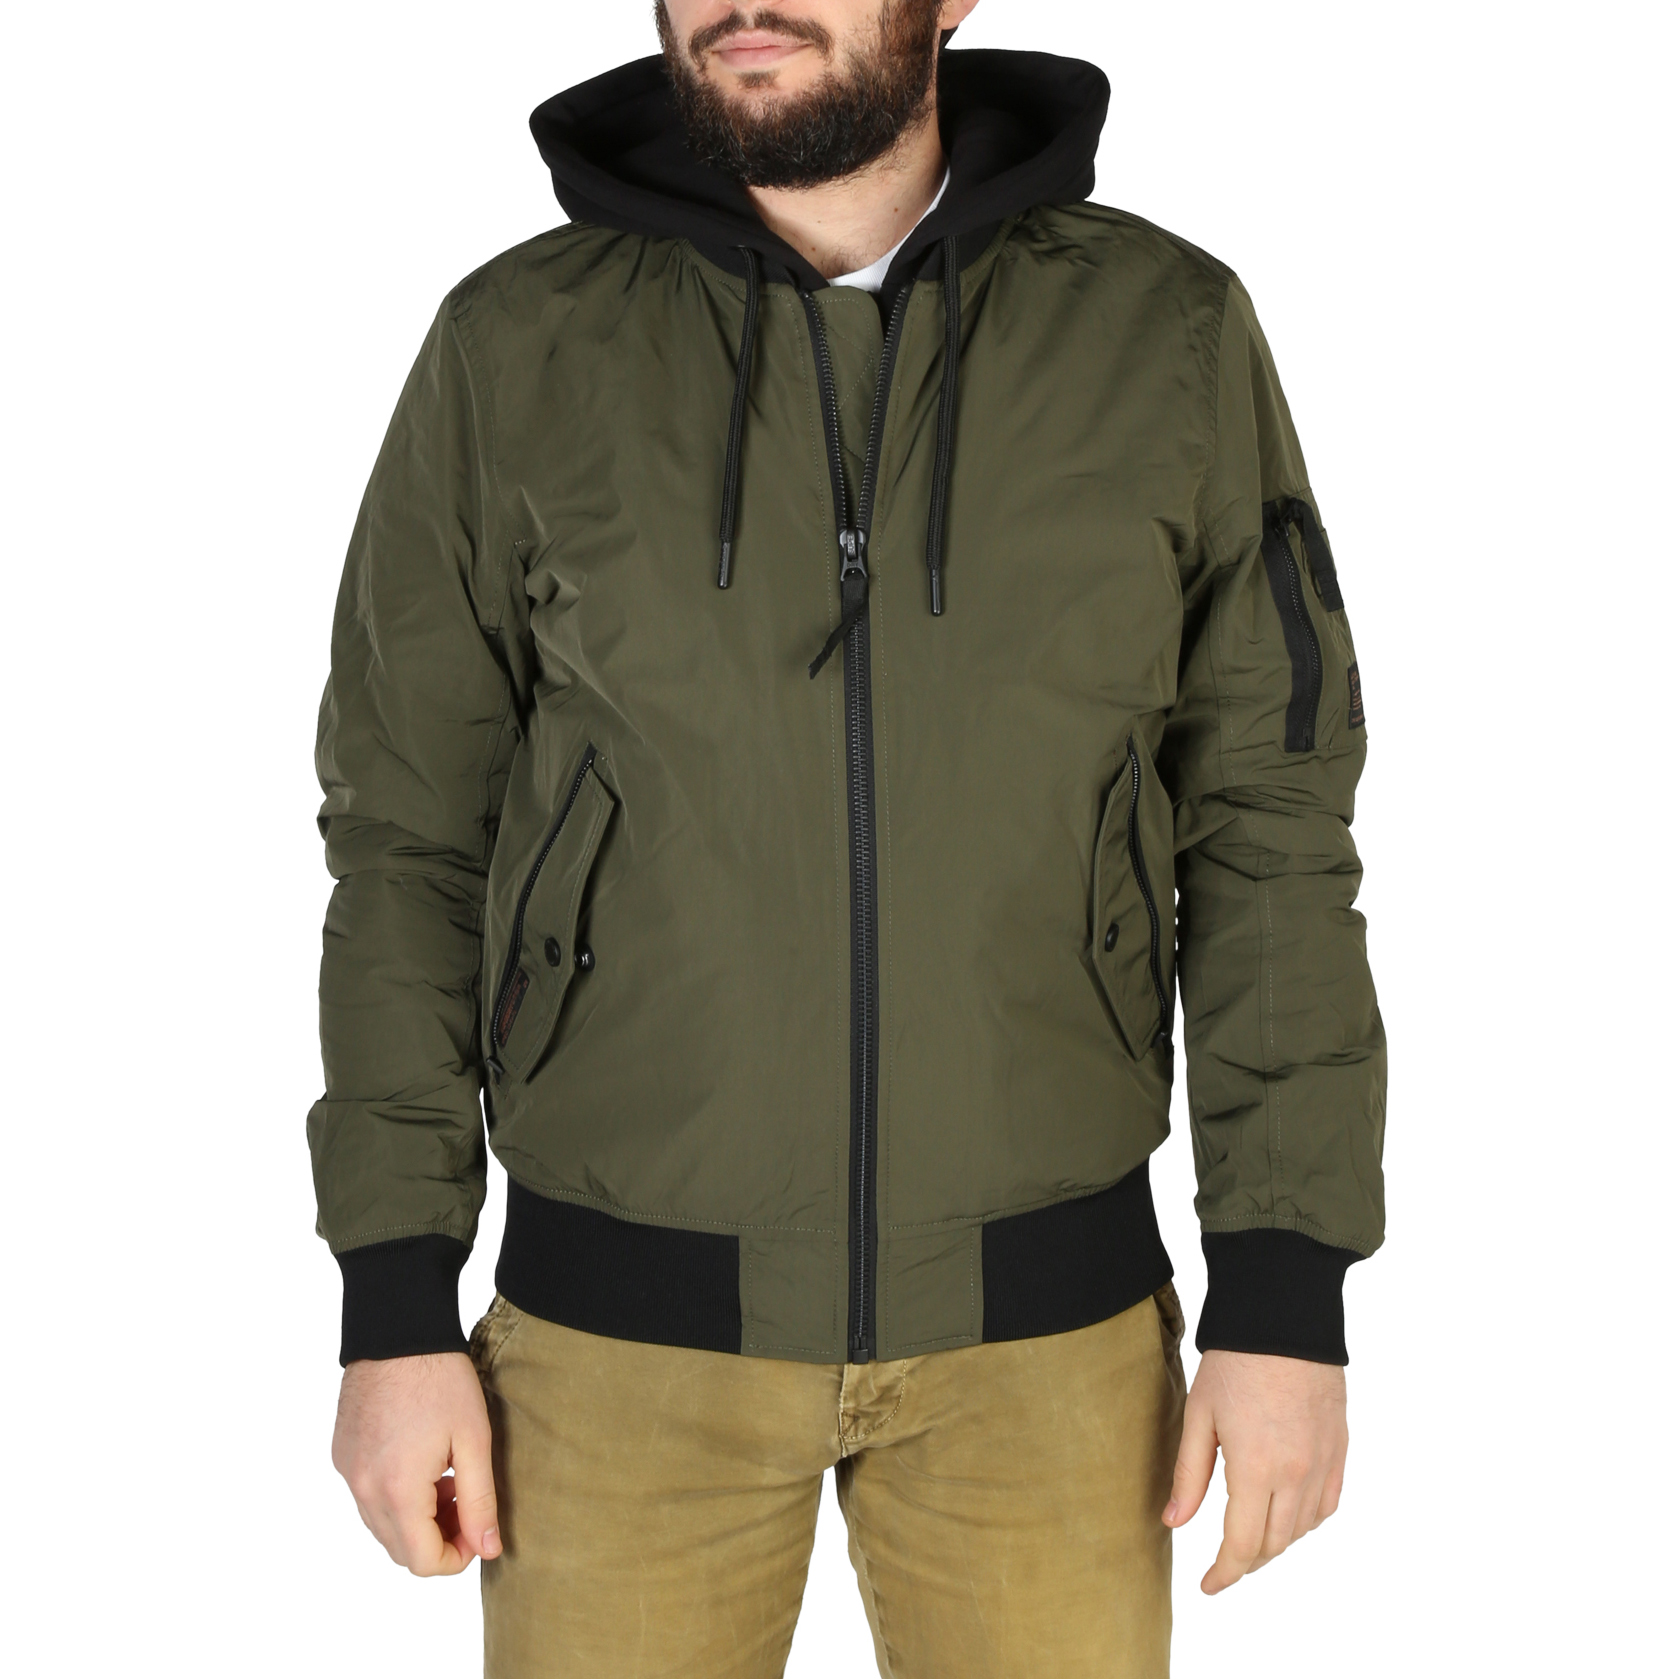 Superdry – M5010143A